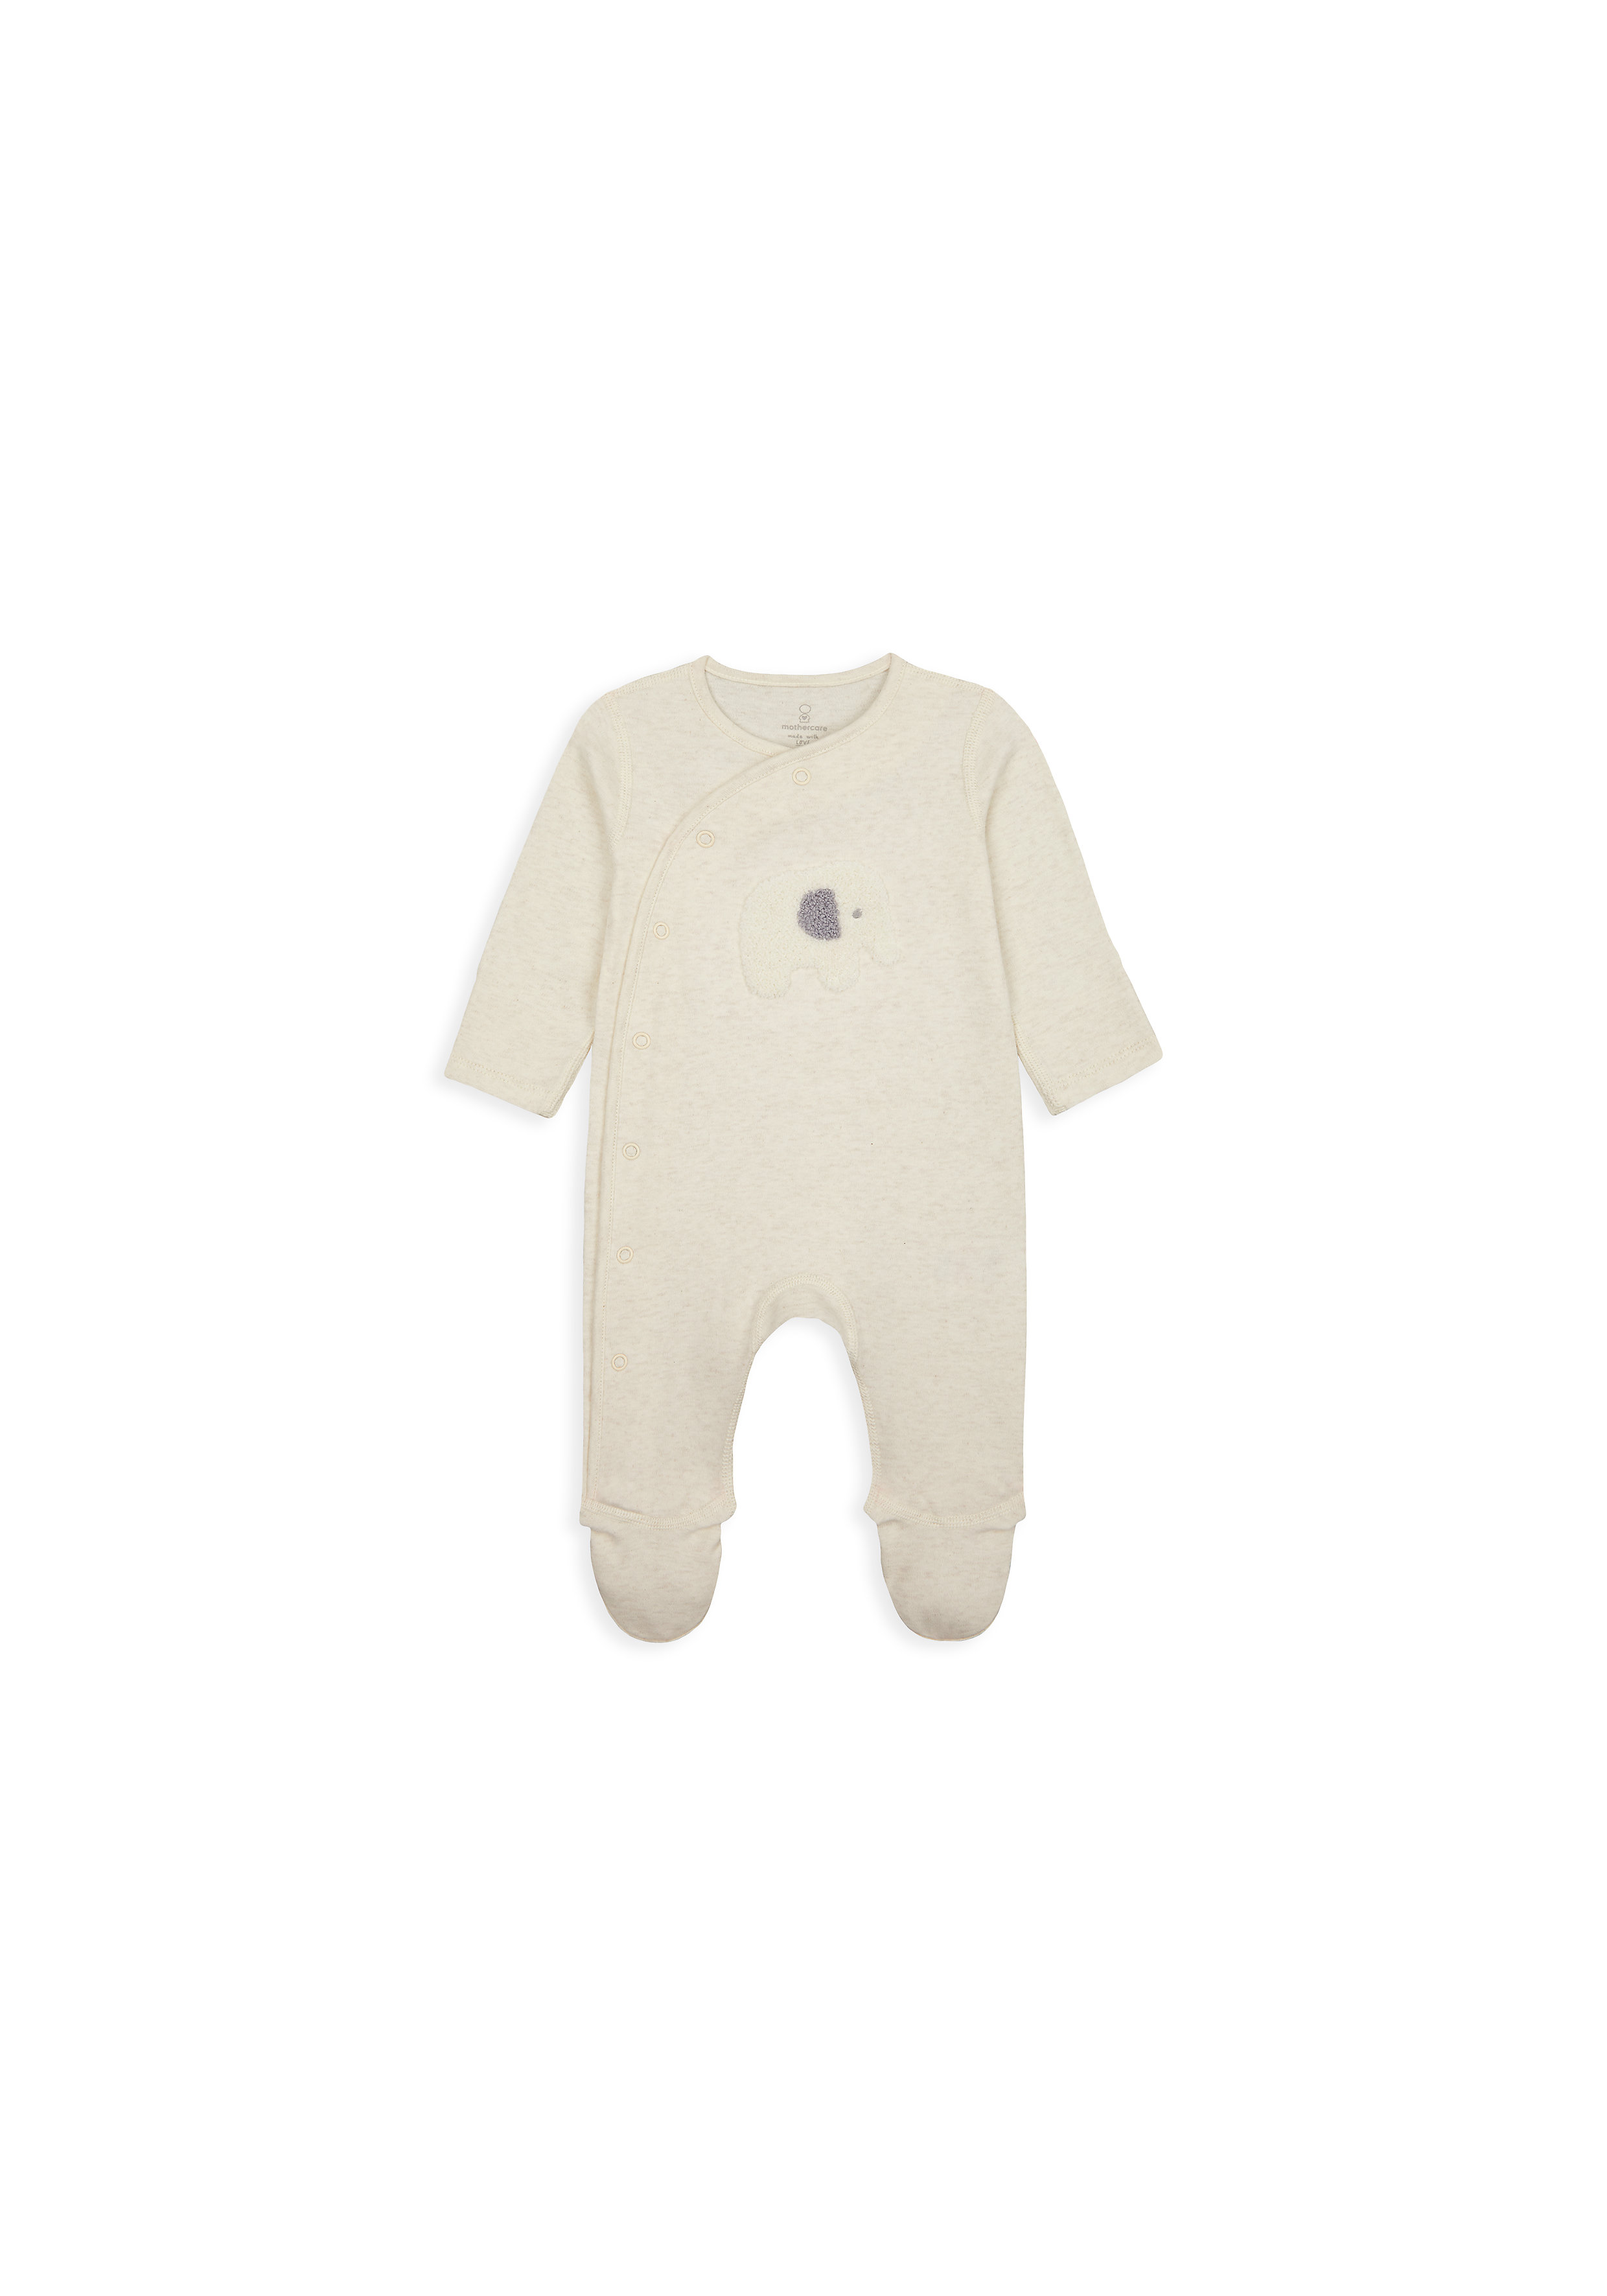 Mothercare   Unisex Full Sleeves Romper Elephant Patch Work - Beige